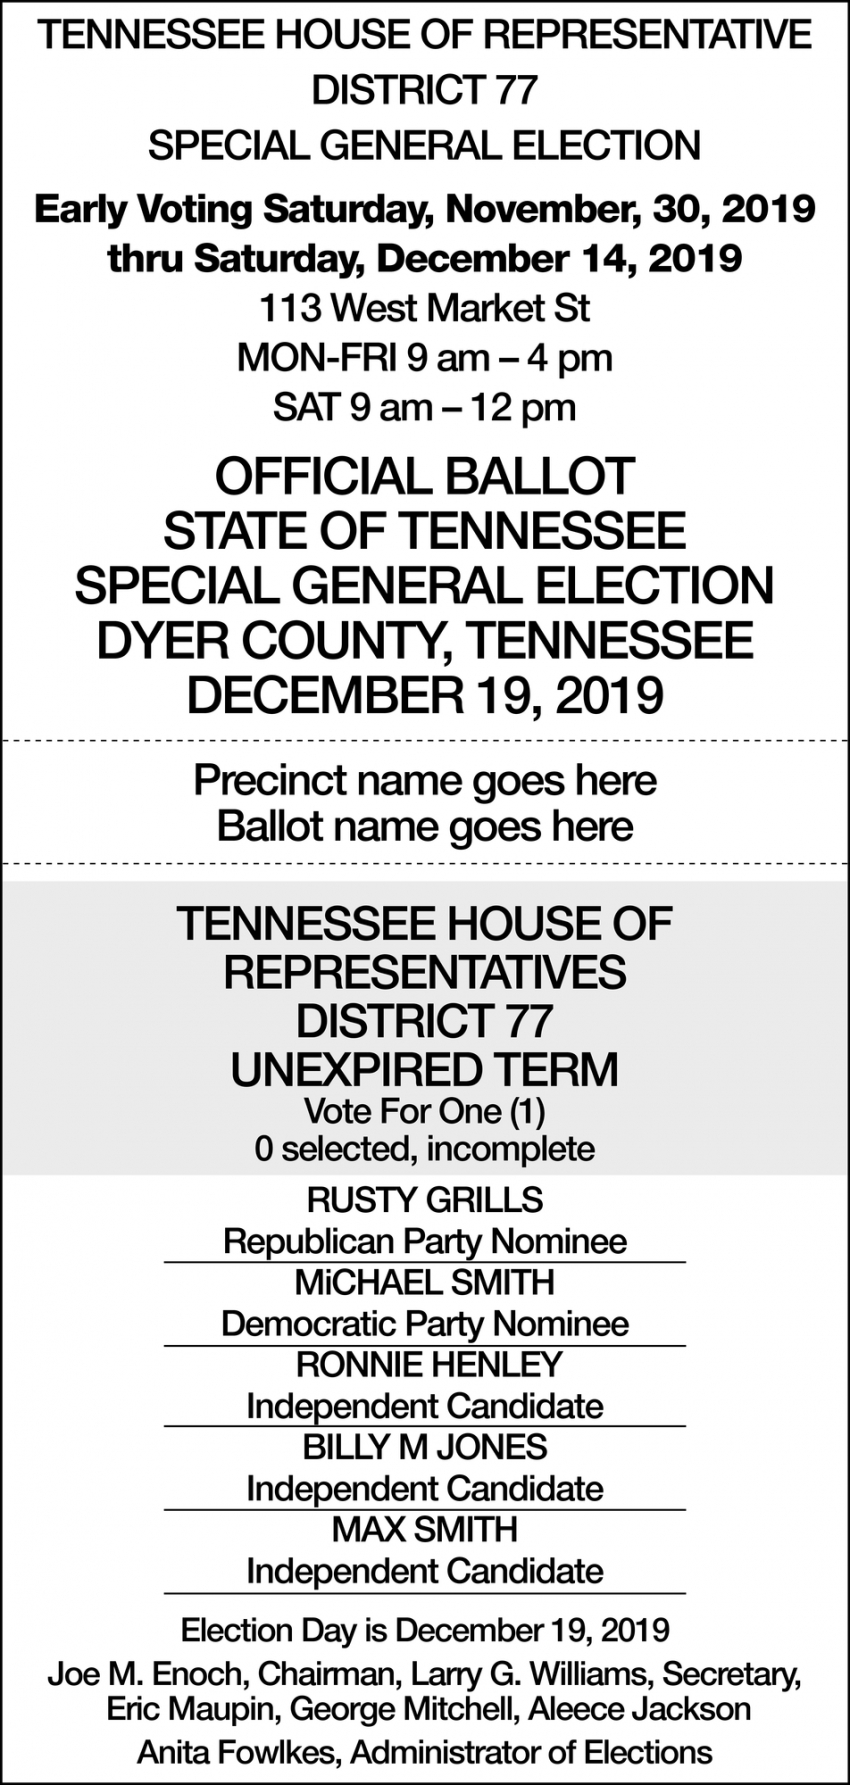 Tennessee House of Representative District 77 Special Primary